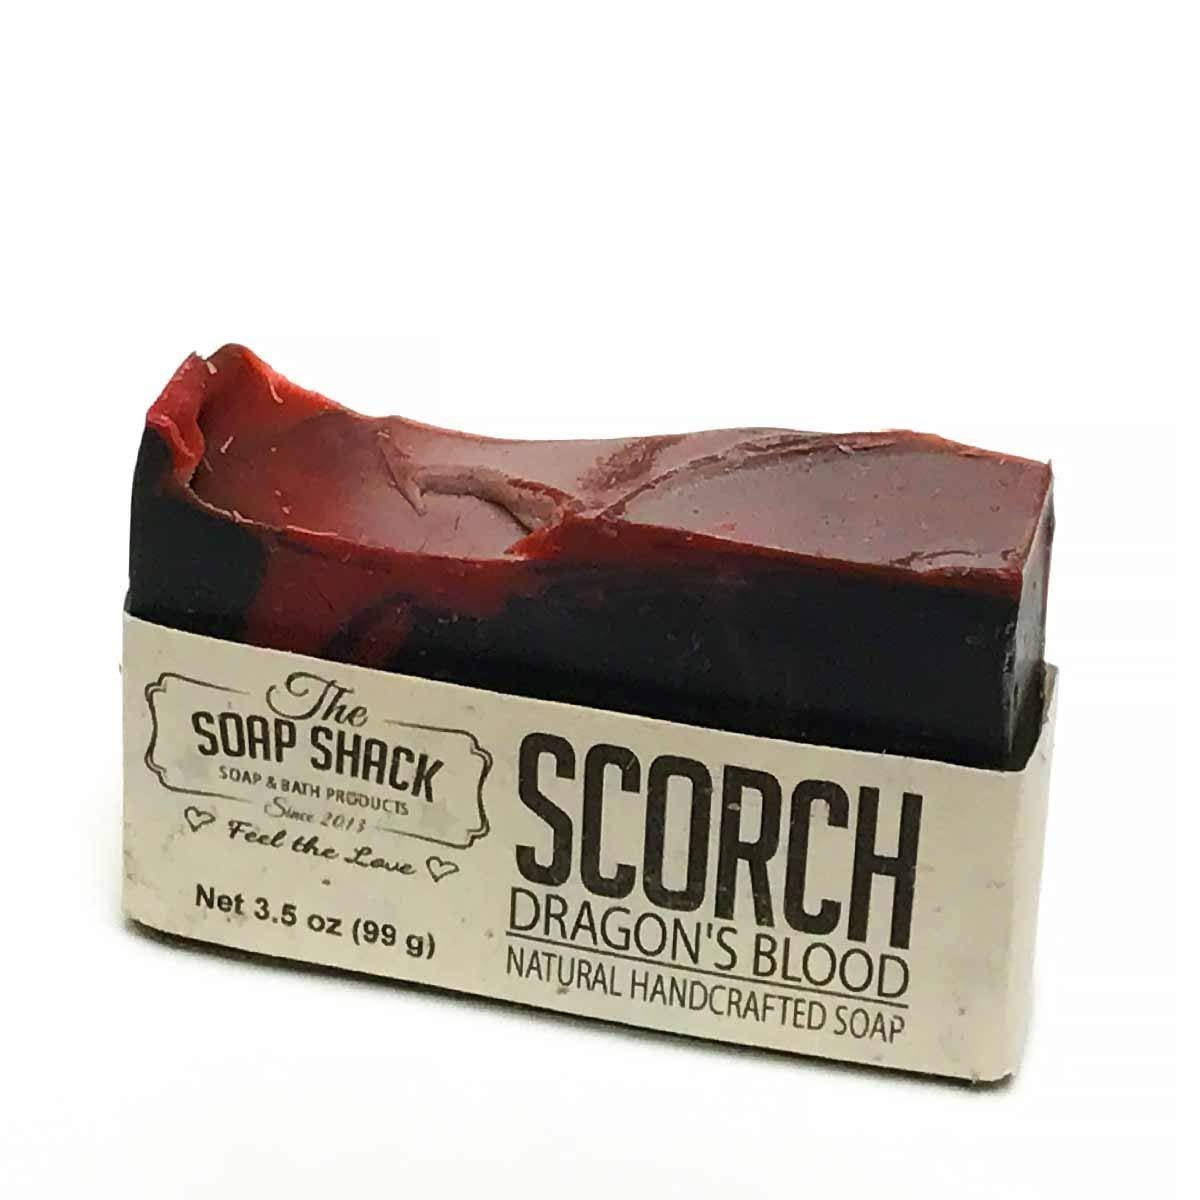 Dragons Blood Soap-Handmade Soap-Cold Process Soap-Activated Charcoal-Sandalwood-Myrrh-Patchouli-By The Soap Shack